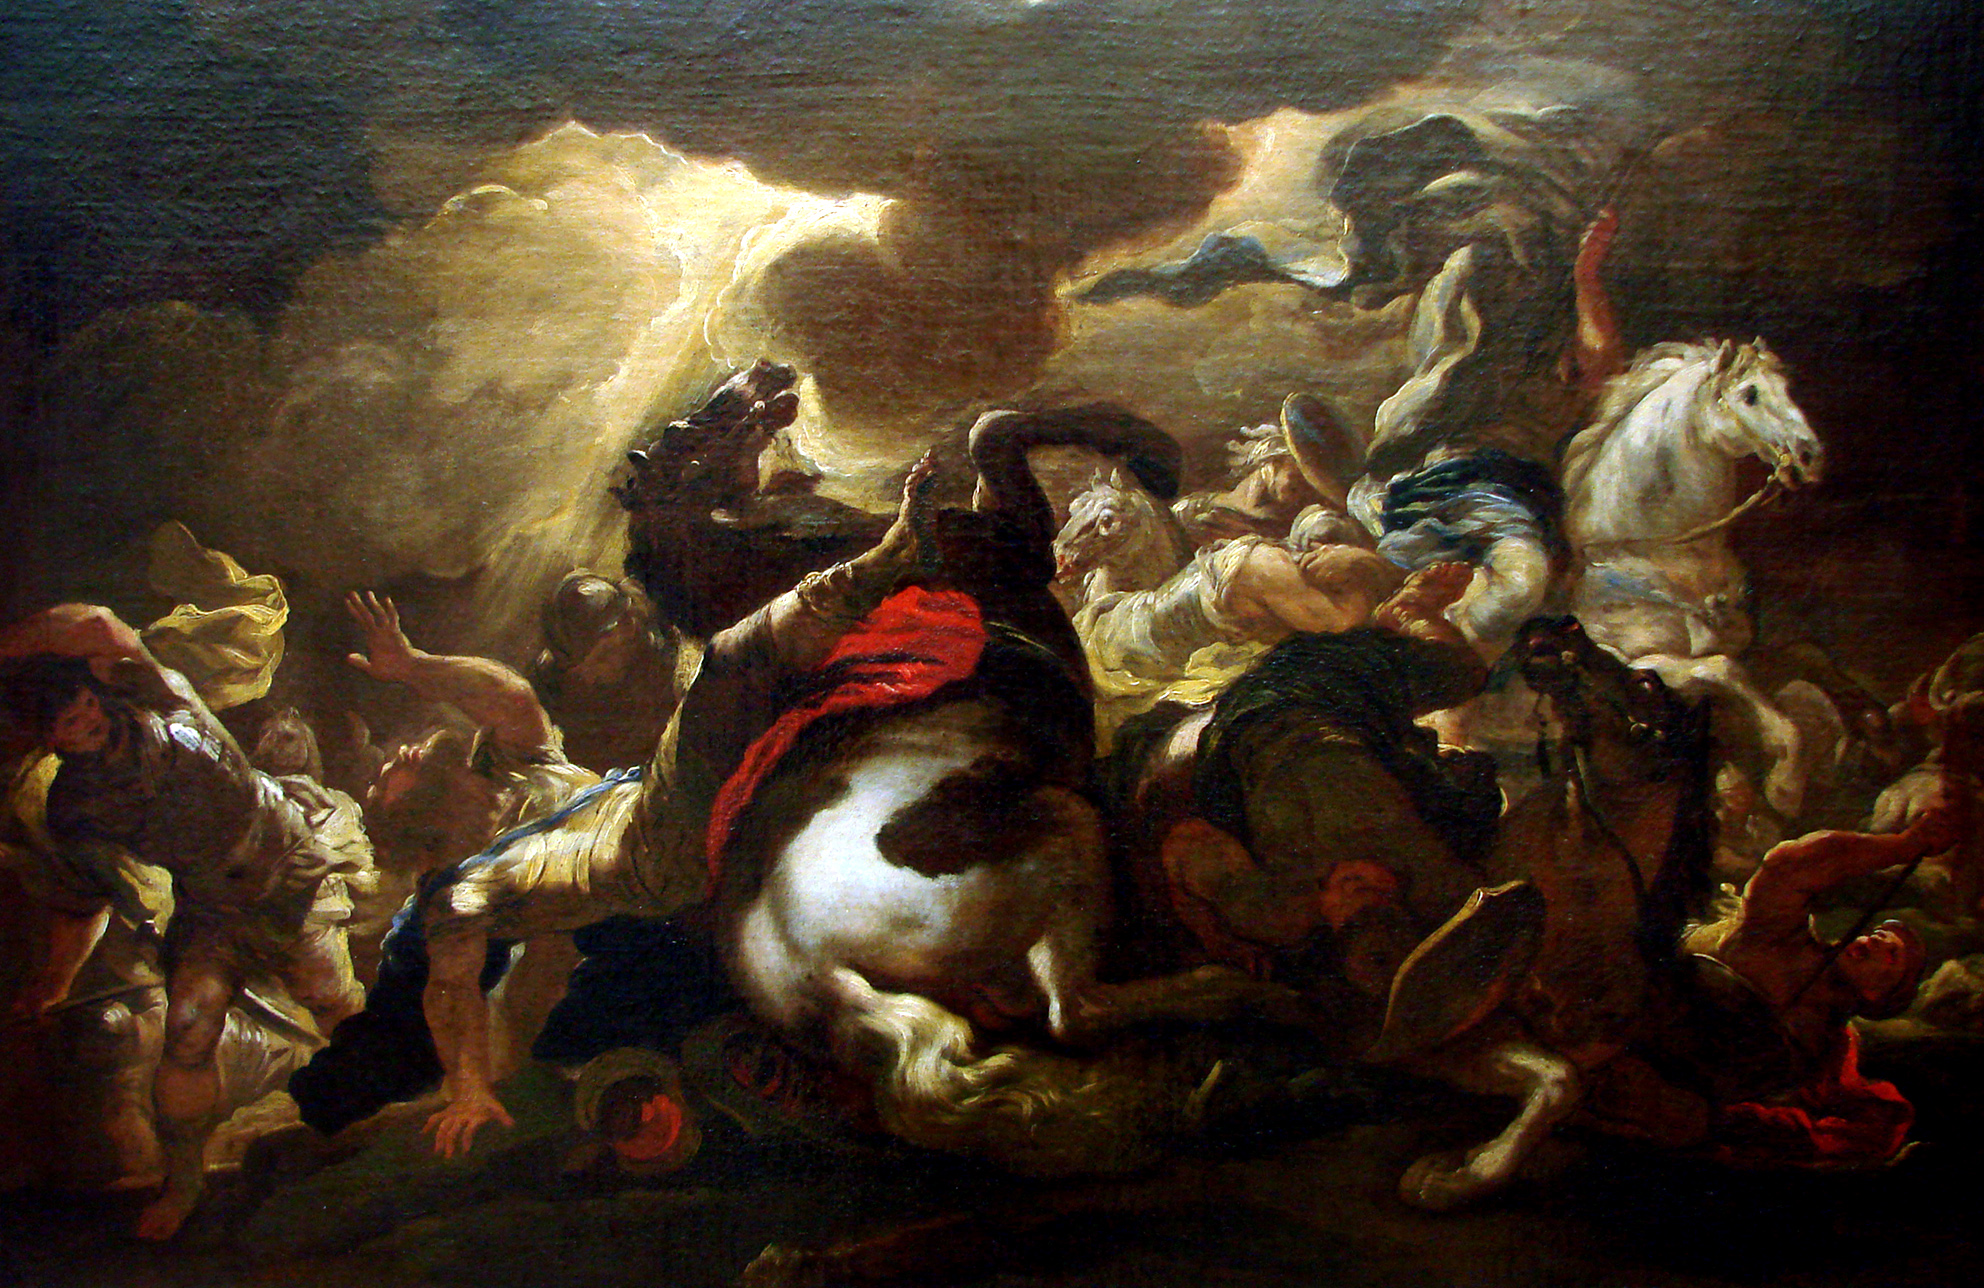 The conversion of St Paul, artwork by Luca Giordiano.